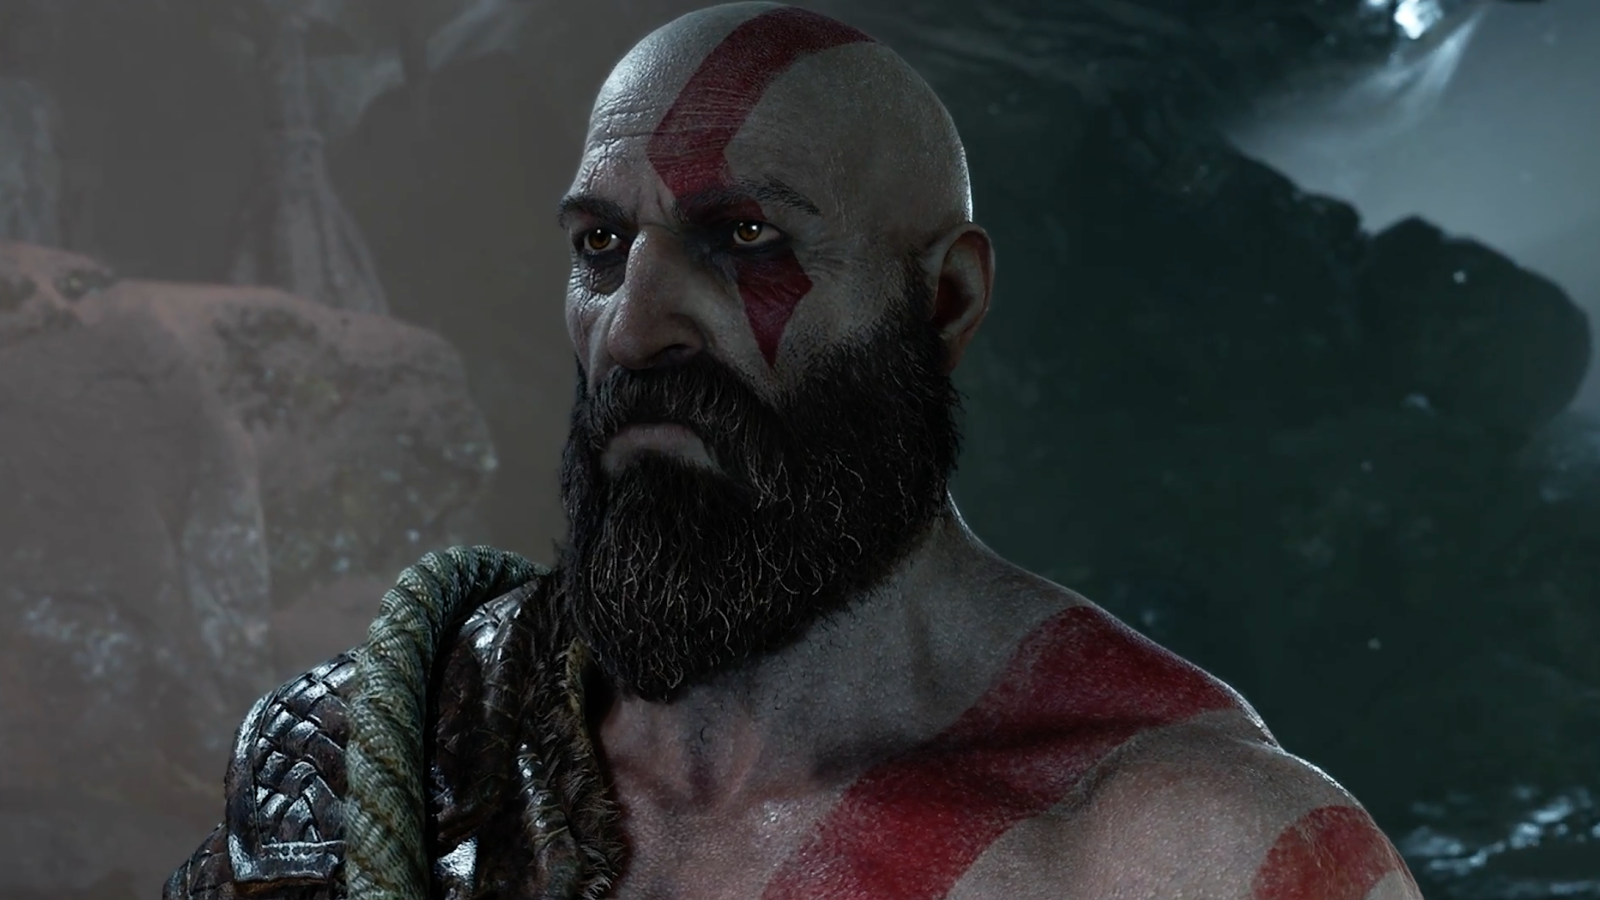 The New God of War Might Finally Make Kratos Interesting